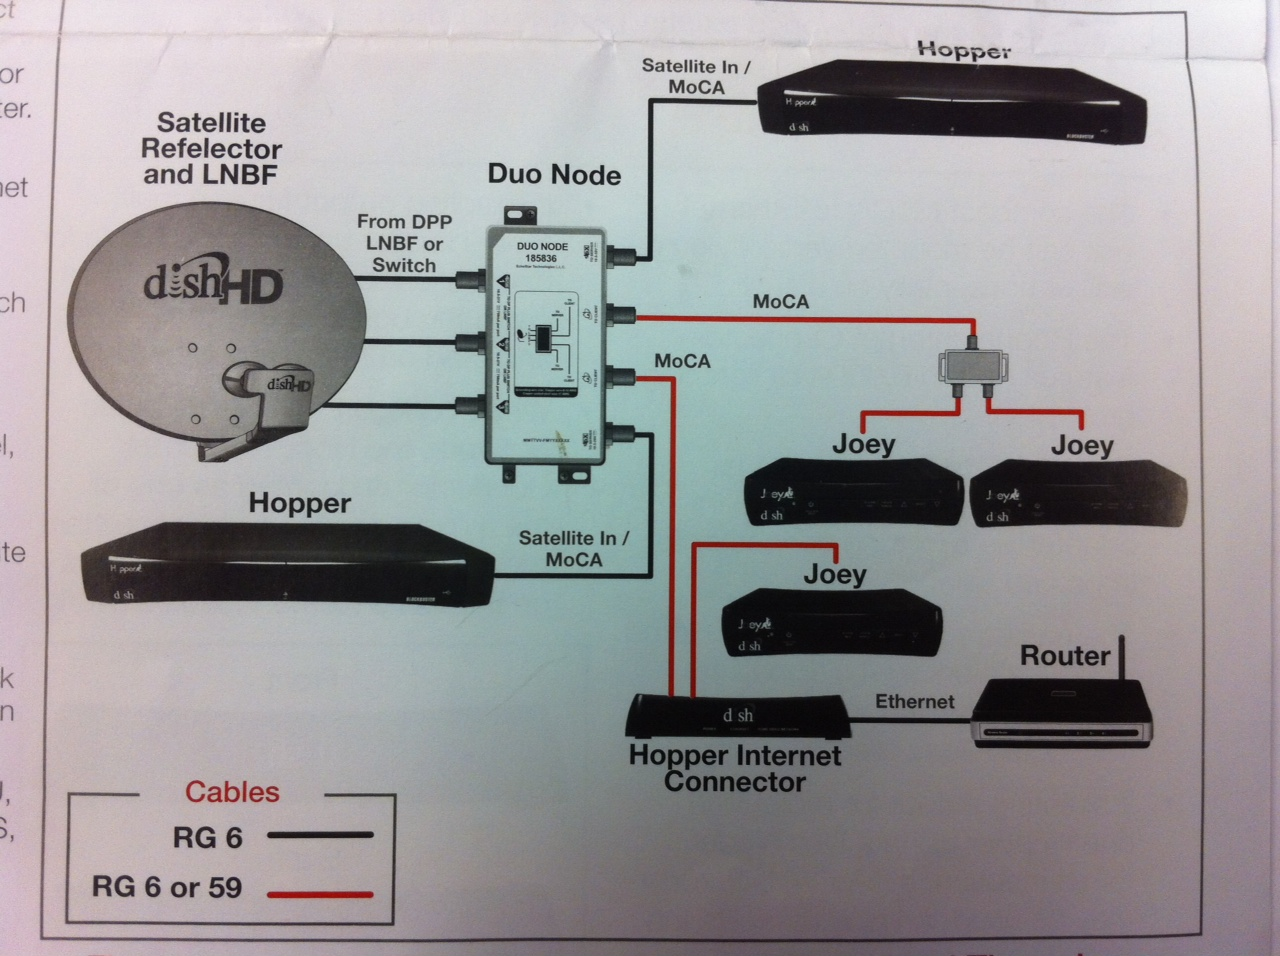 dish wiring diagrams dish image wiring diagram wiring diagram for dish network the wiring diagram on dish wiring diagrams